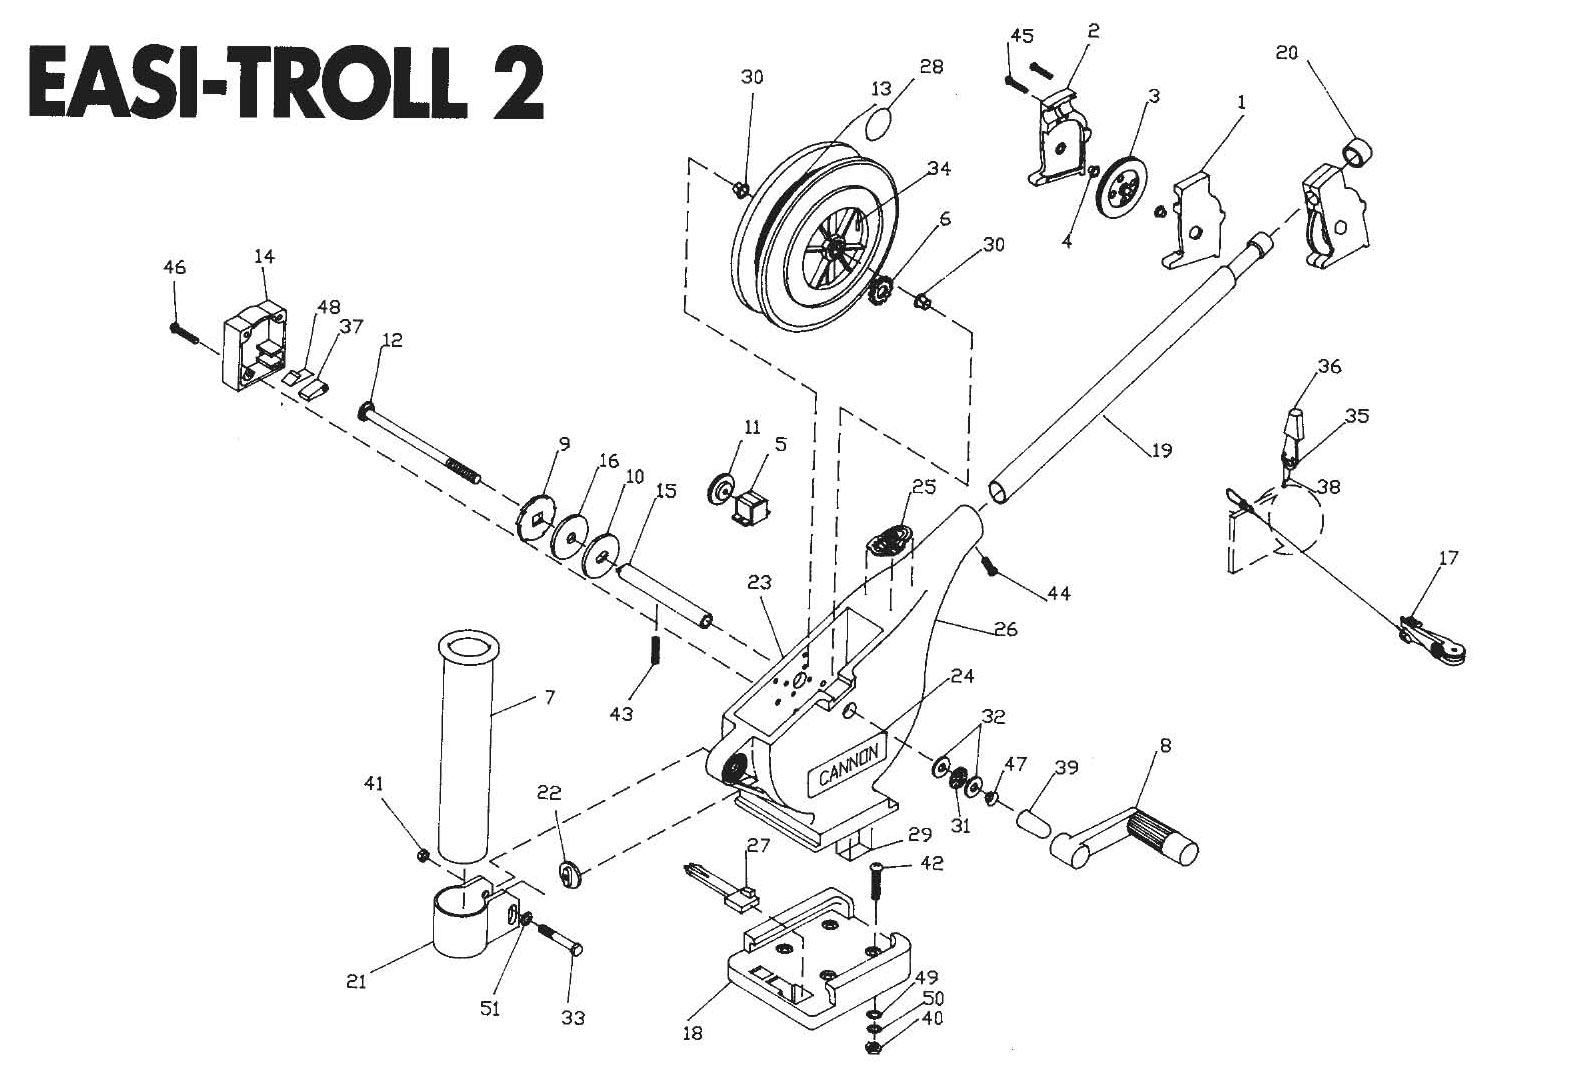 Order Cannon Easi-Troll 2 Downrigger Parts Online at